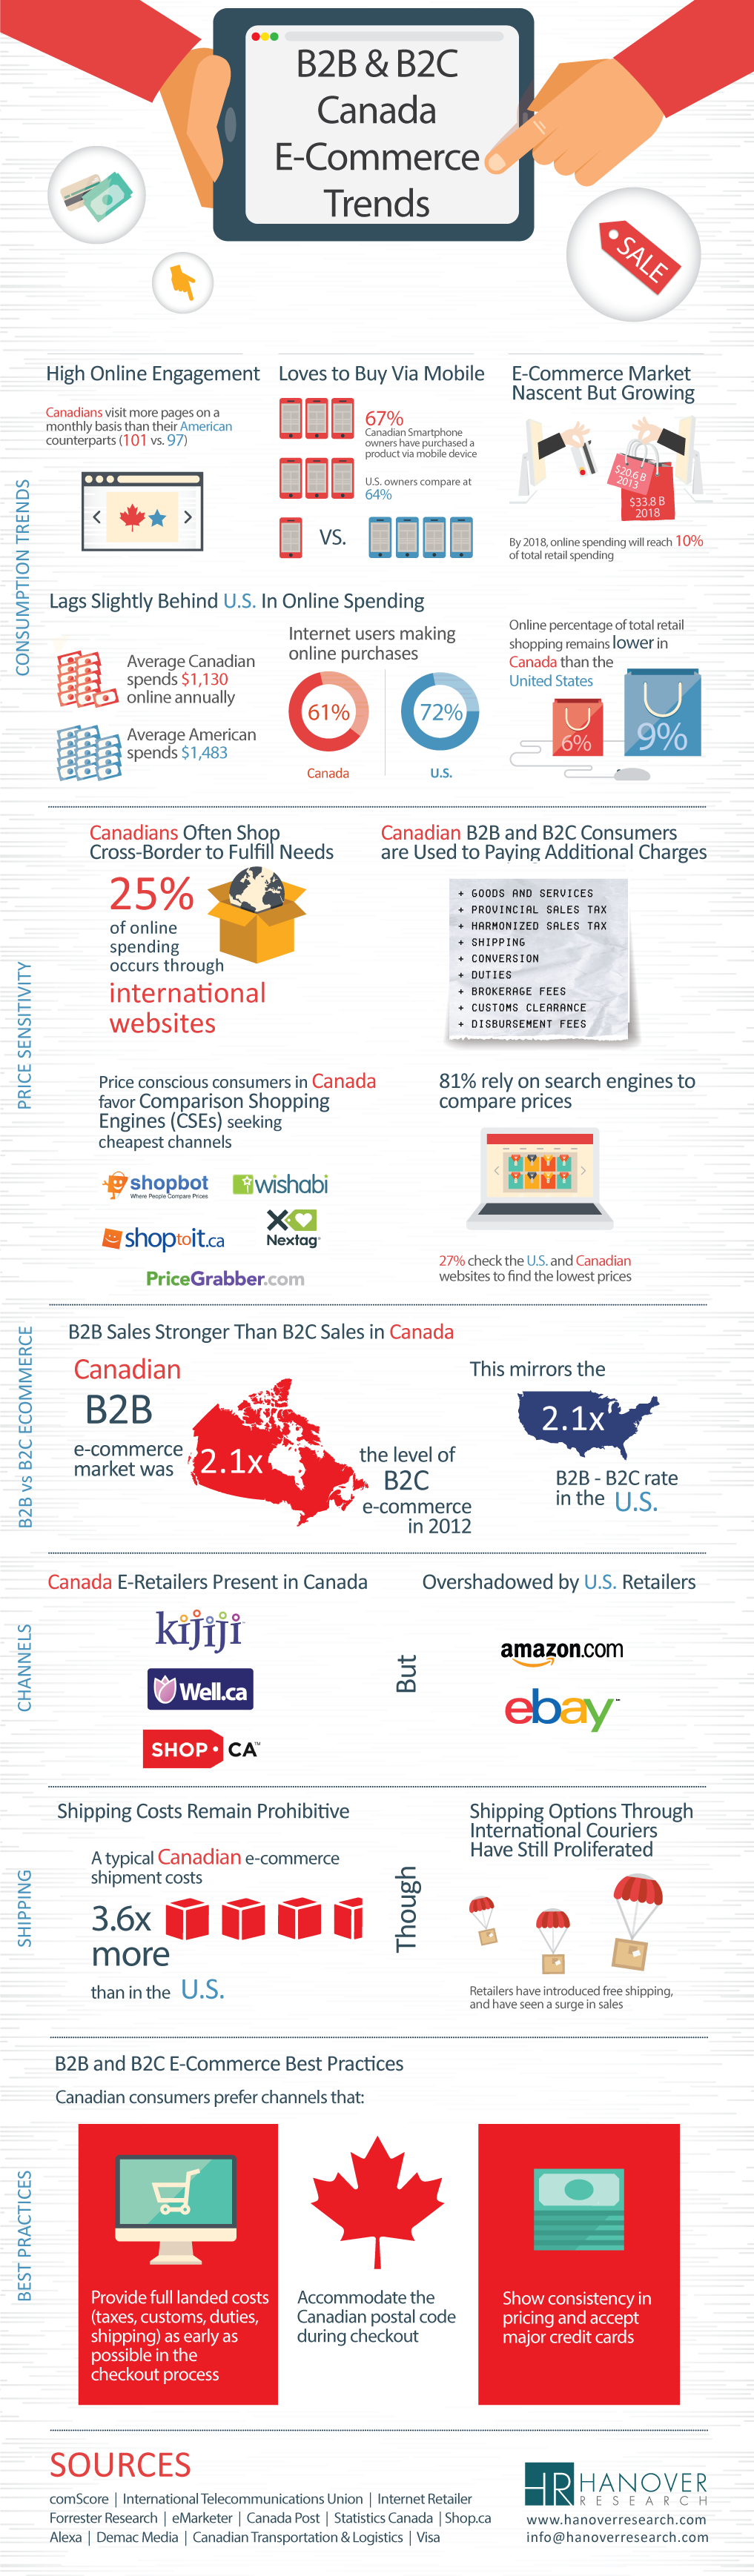 Why Canada Will Be the Next Great E Commerce Market image Grainger Infographic Final